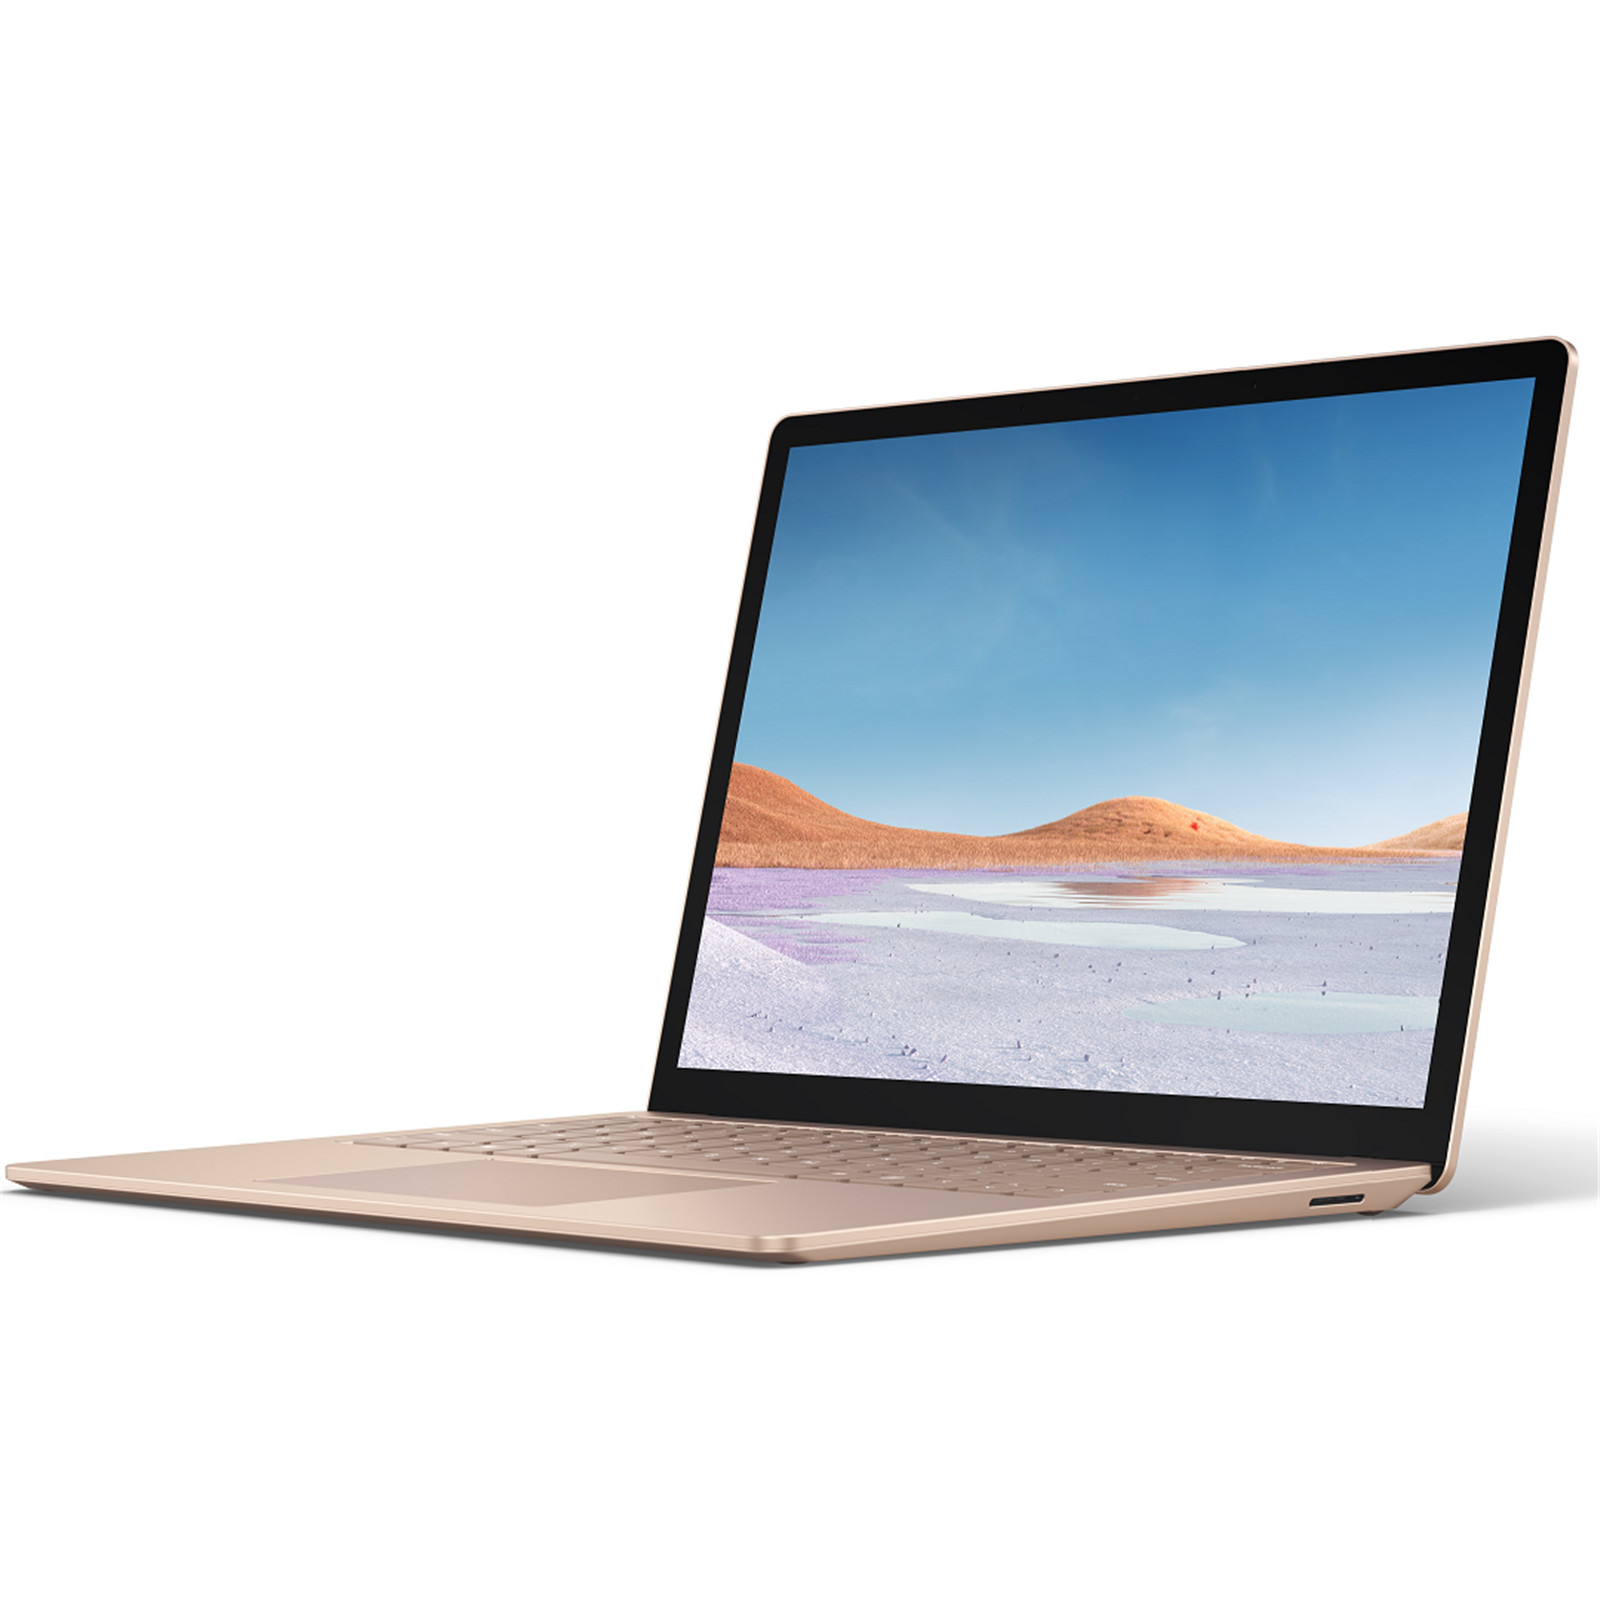 Microsoft Surface Laptop 3 13.5 Inch i7-1065G7 3.90GHz 16GB RAM 512GB SSD Touchscreen Laptop with Windows 10 Pro - Sandstone